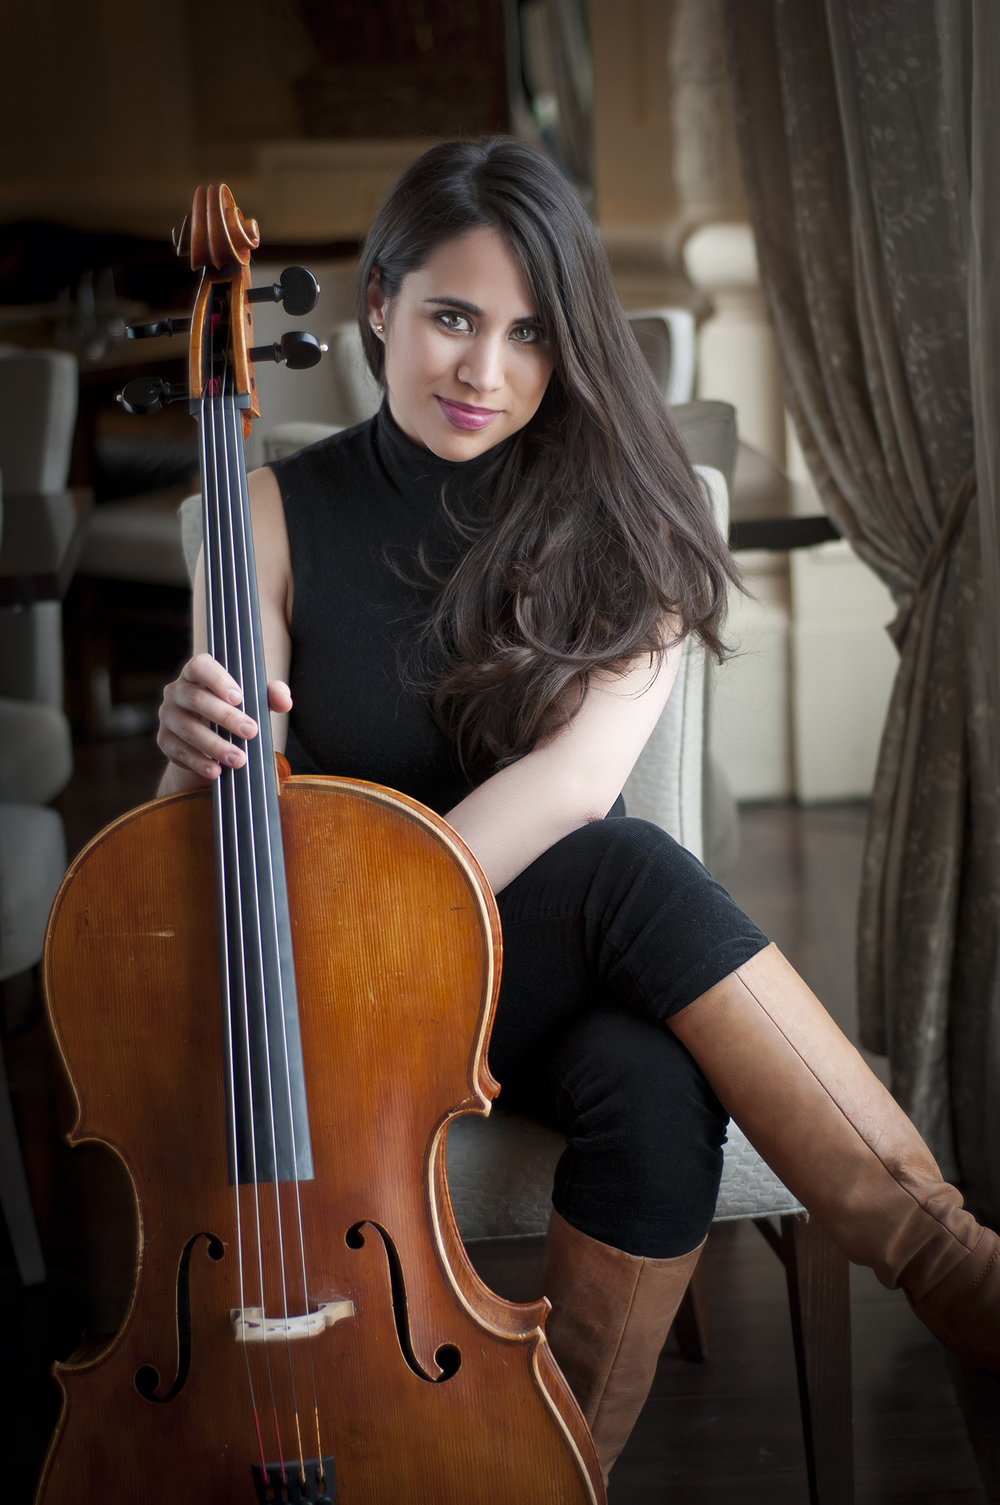 christine lamprea, cello